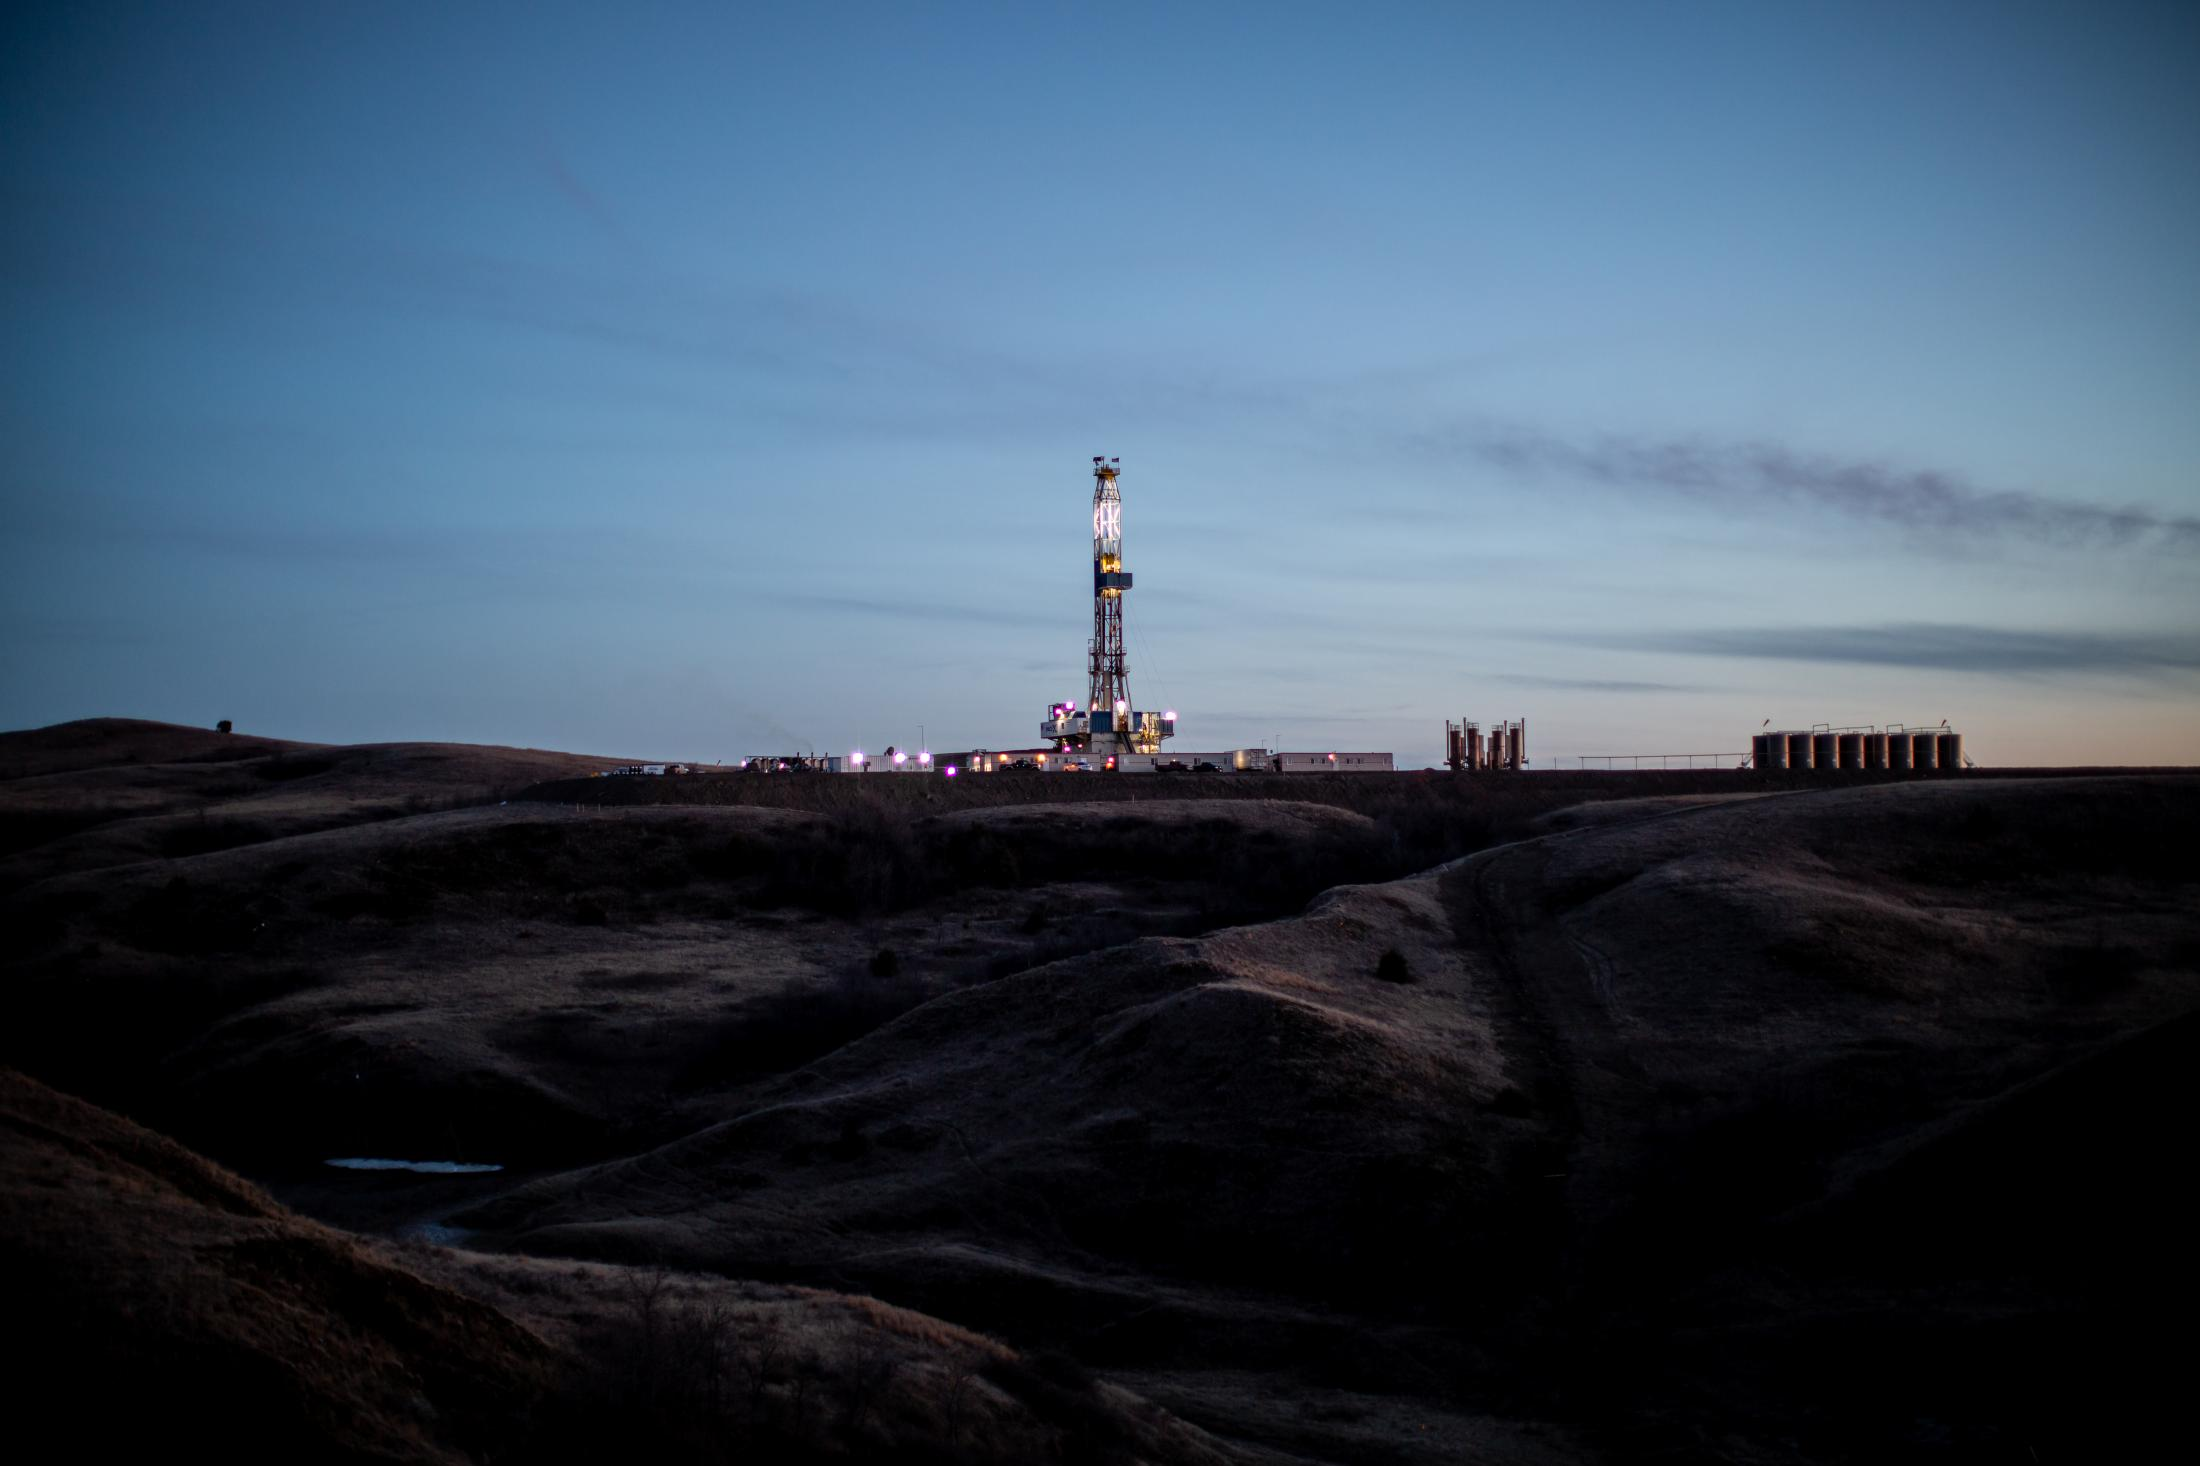 4/7/15- North Dakota - A derick stands in the middle of a rural field; the dericks are used to drill and push casing pipes deep into the ground to pump oil.